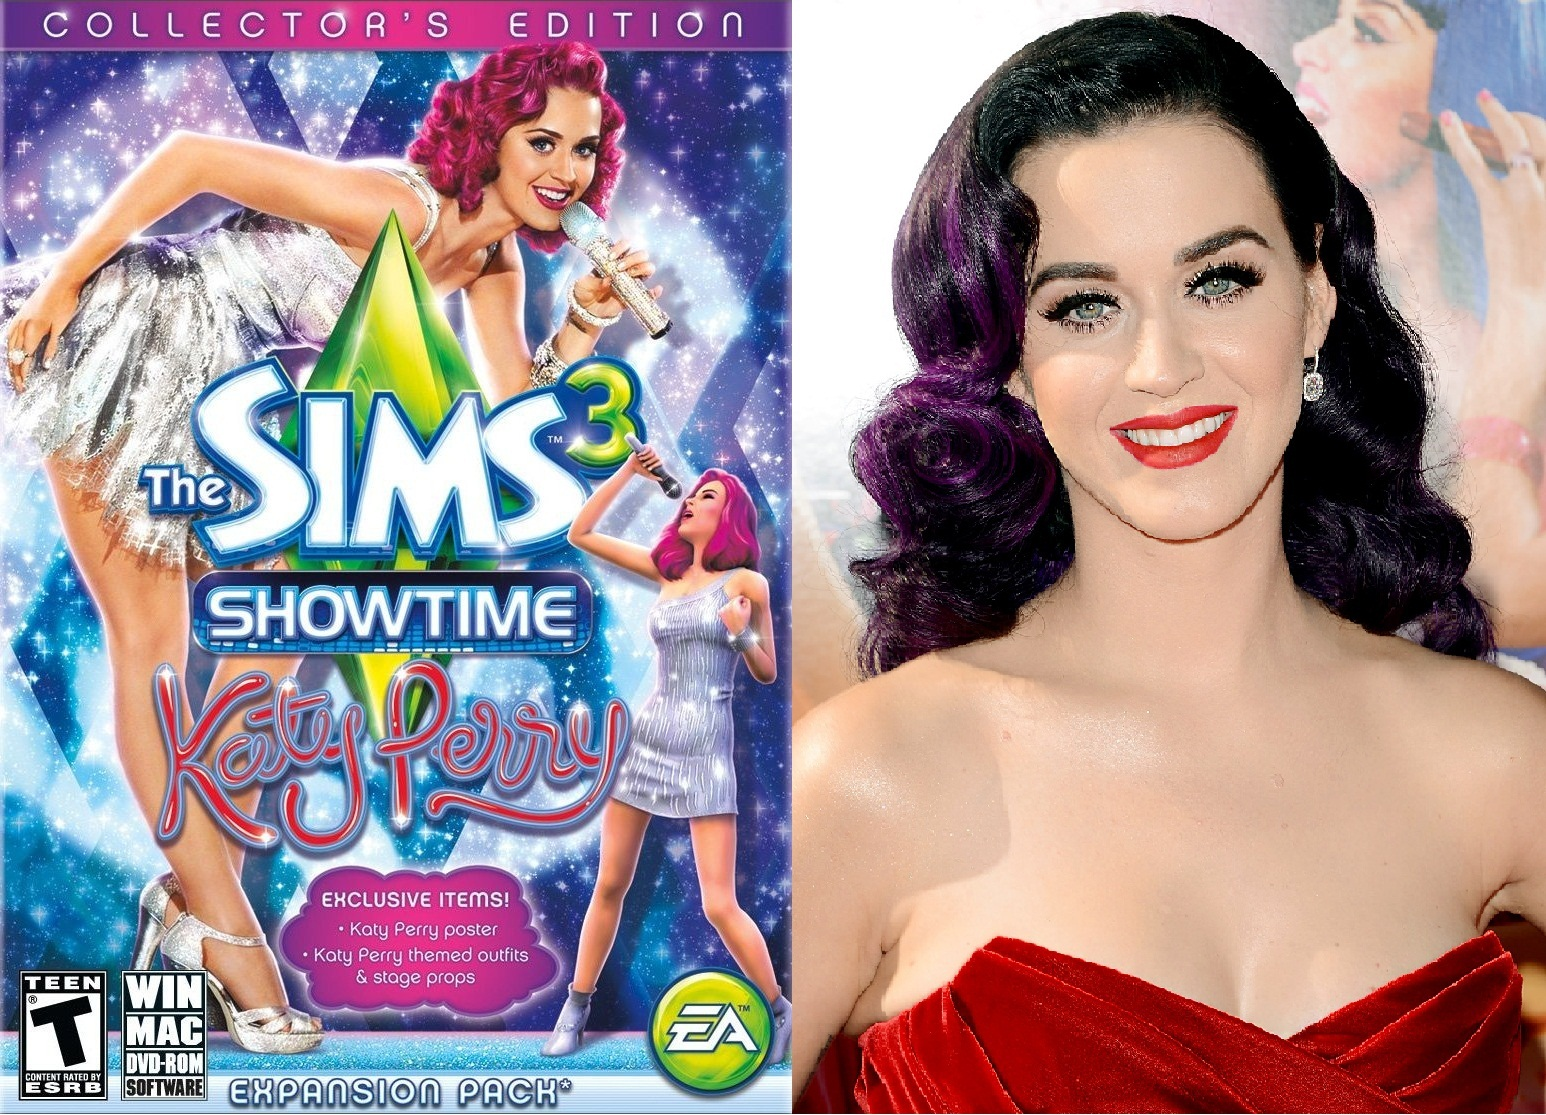 The sims 3showtime free nude skins pc nsfw scenes